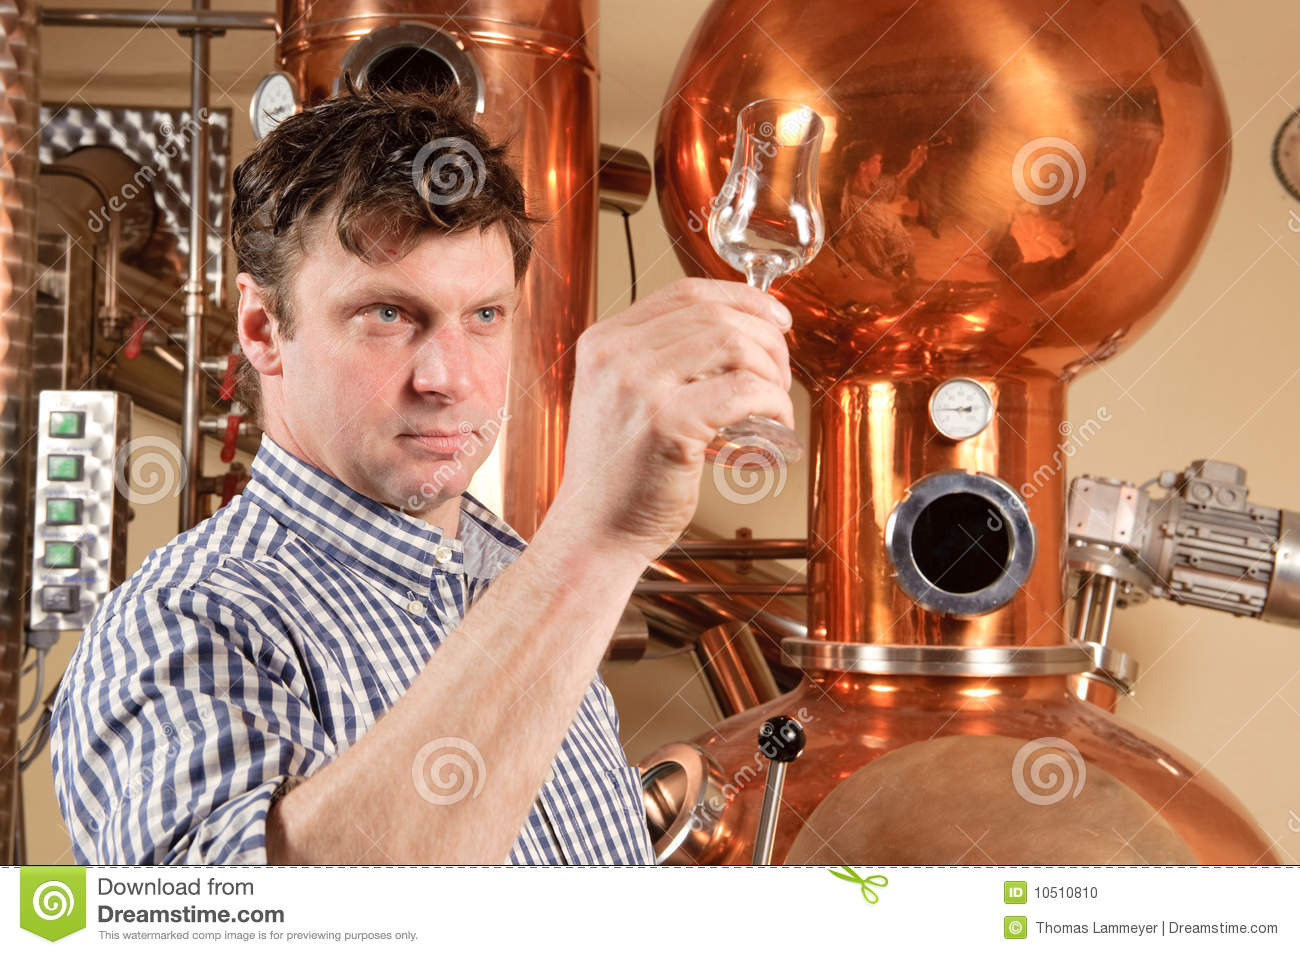 Man in front of distillery